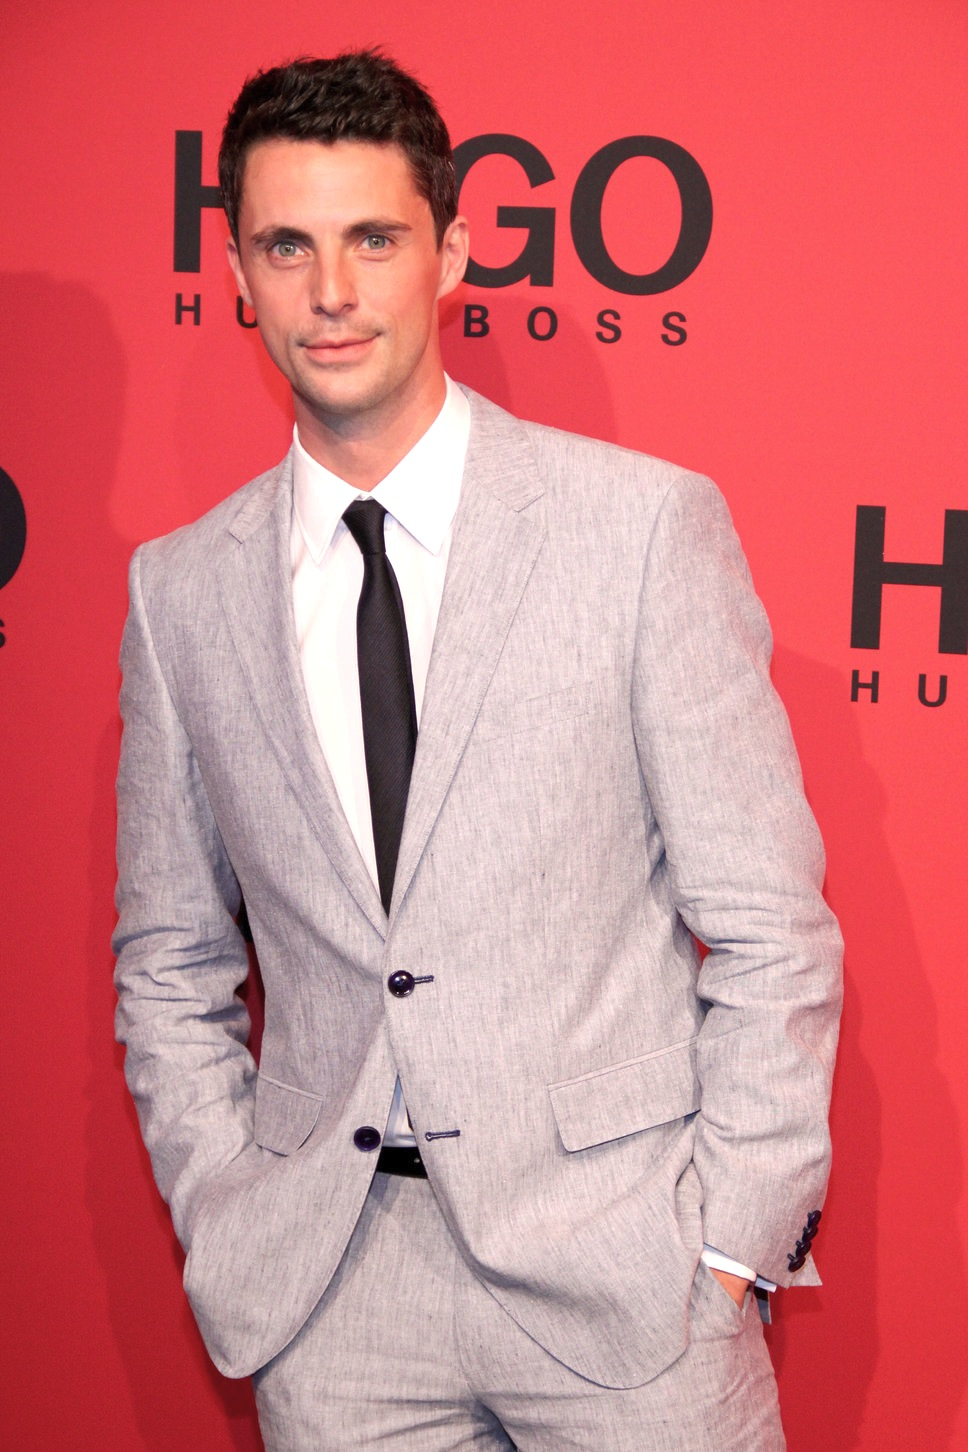 matthew_goode_at_mercedes_benz.jpg